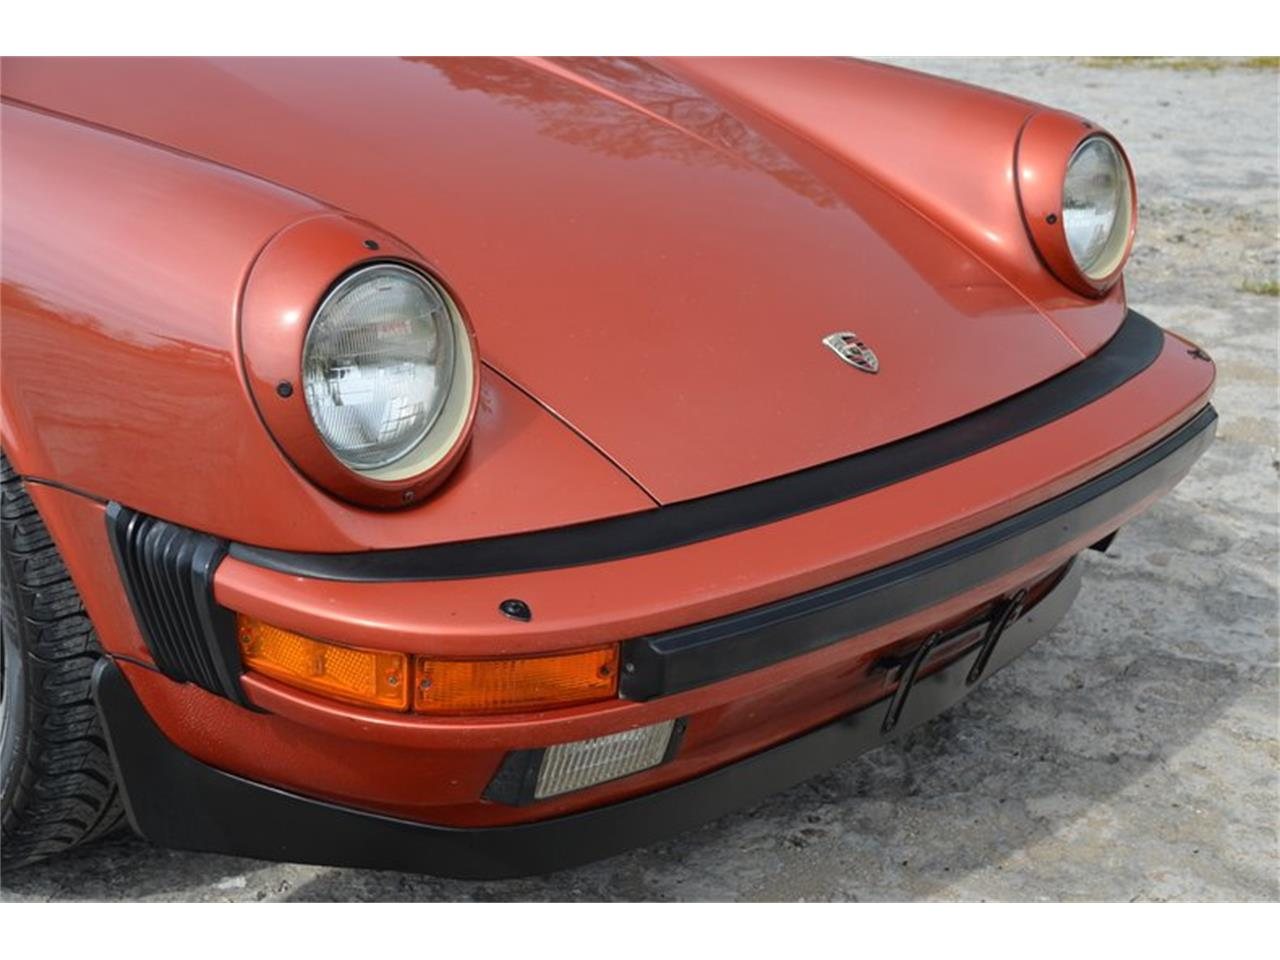 Large Picture of '84 Porsche 911 located in Tennessee - $42,500.00 - PX8U